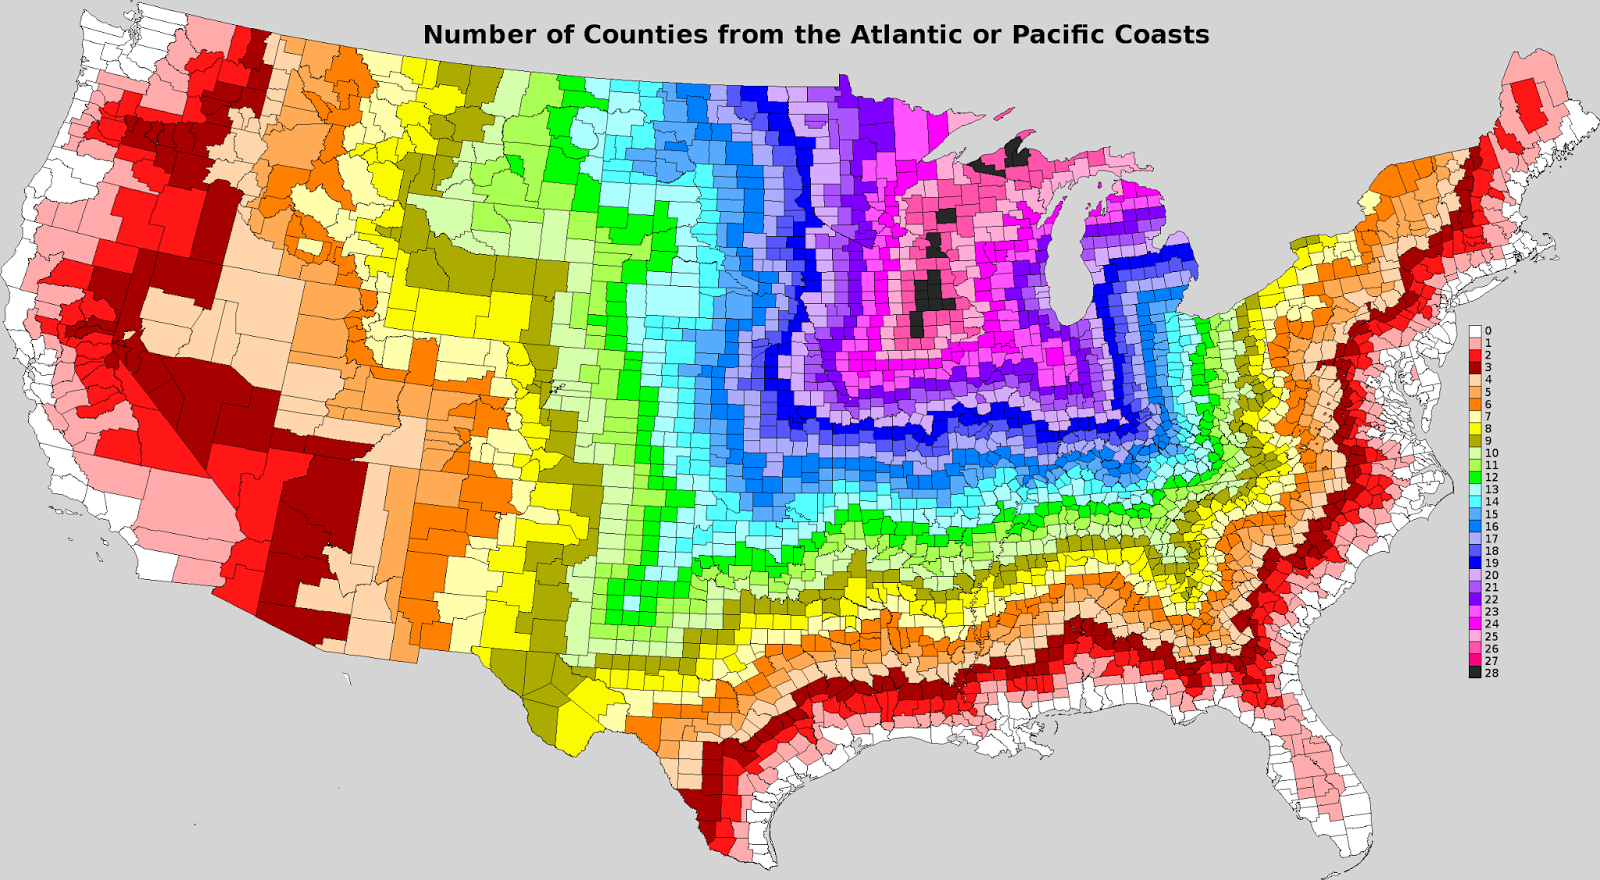 Number of counties from the Atlantic or Pacific coasts